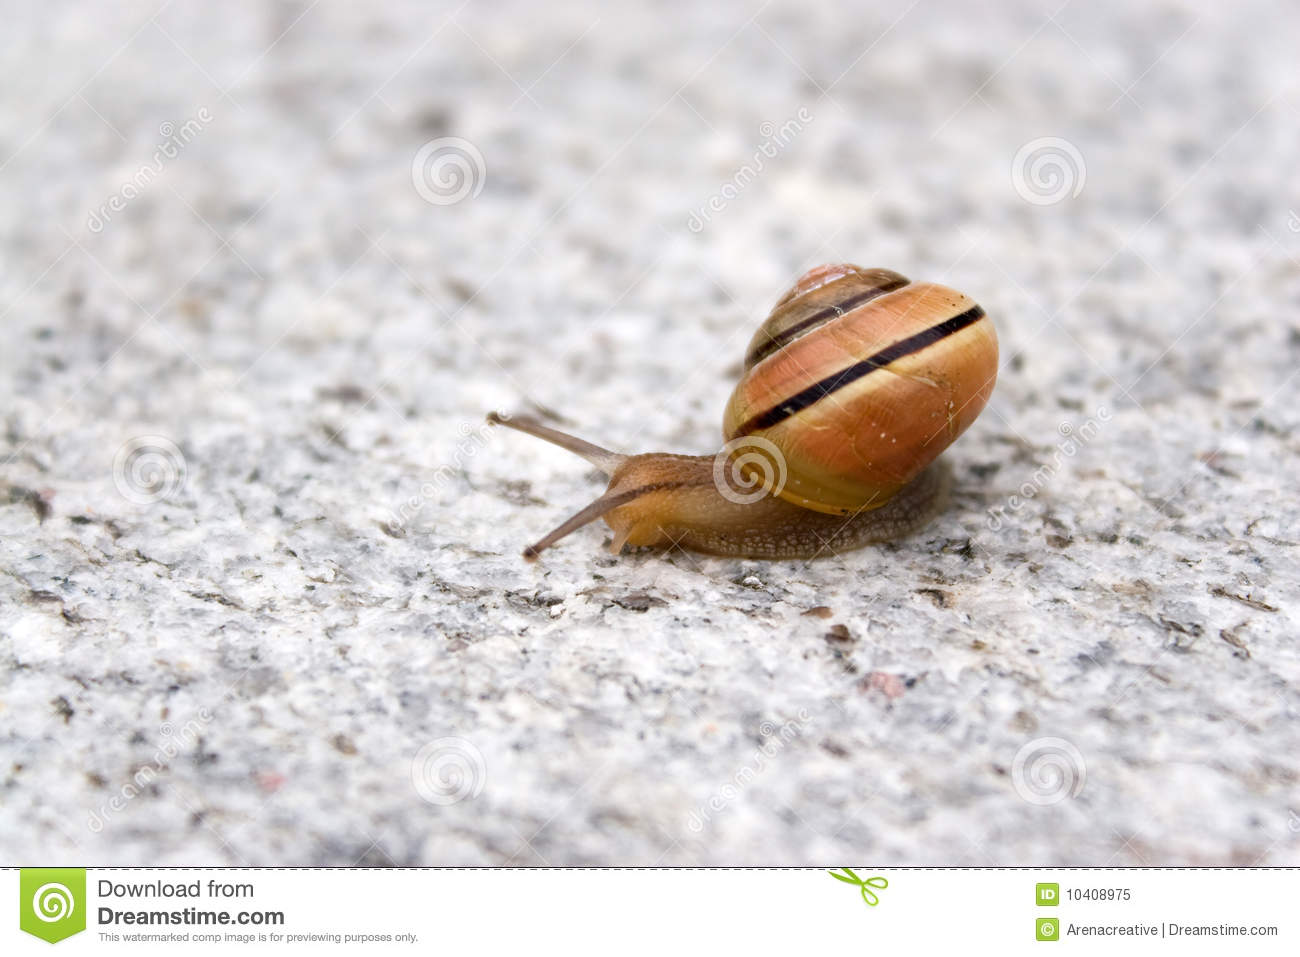 Sea Snail Royalty Free Stock Photo - Image: 10408975